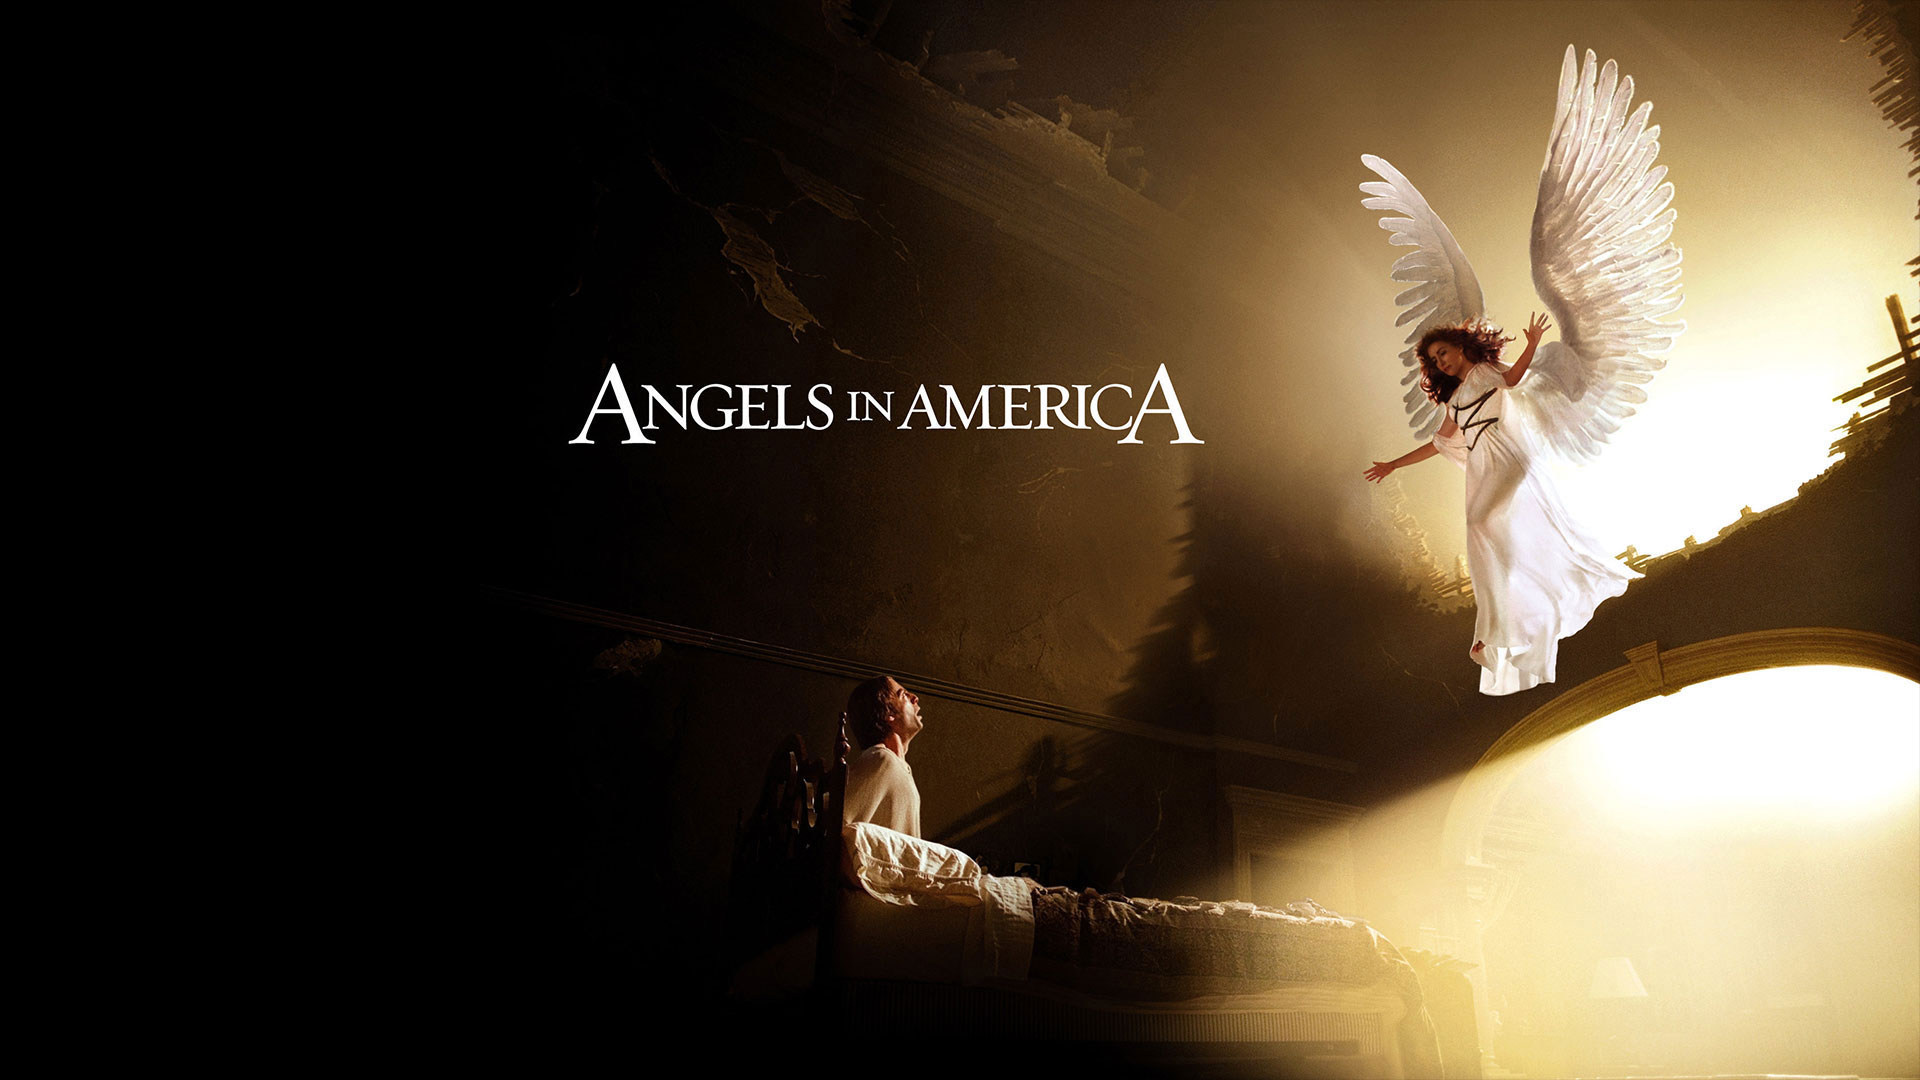 Angels in America, Part 2 - Chapter 6